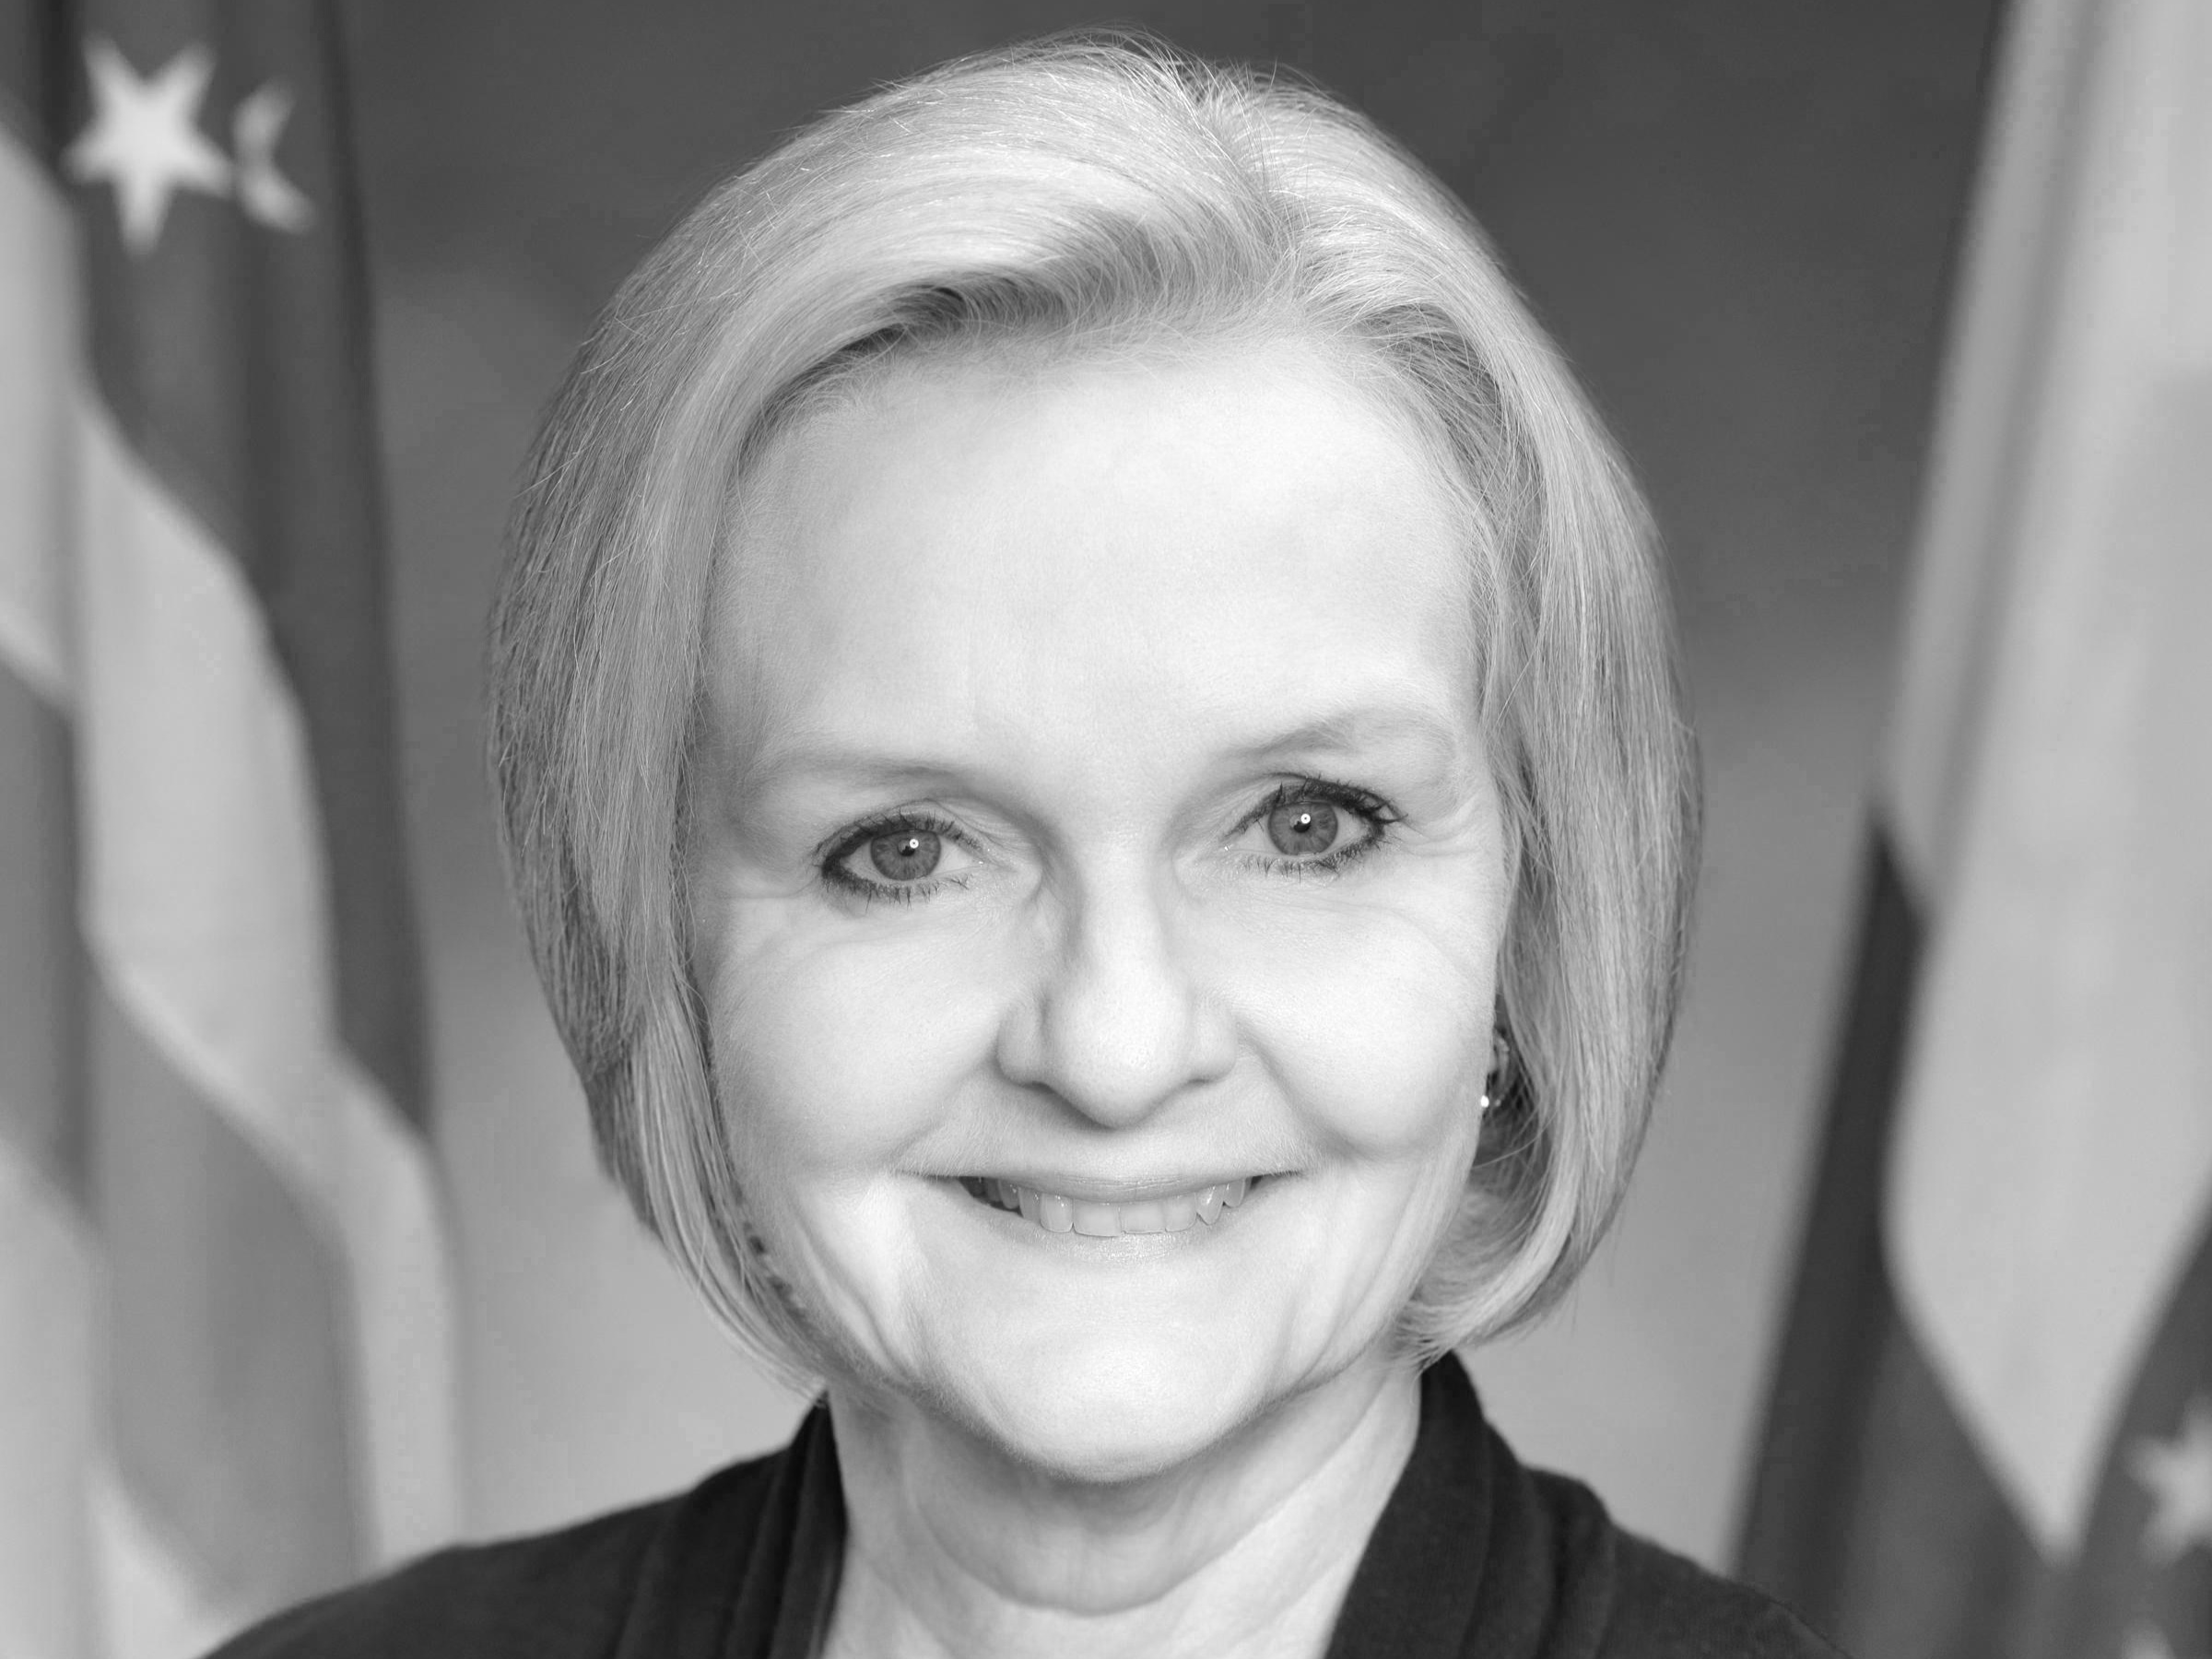 The Honorable Claire McCaskill - Former Senator of Missouri, political analyst